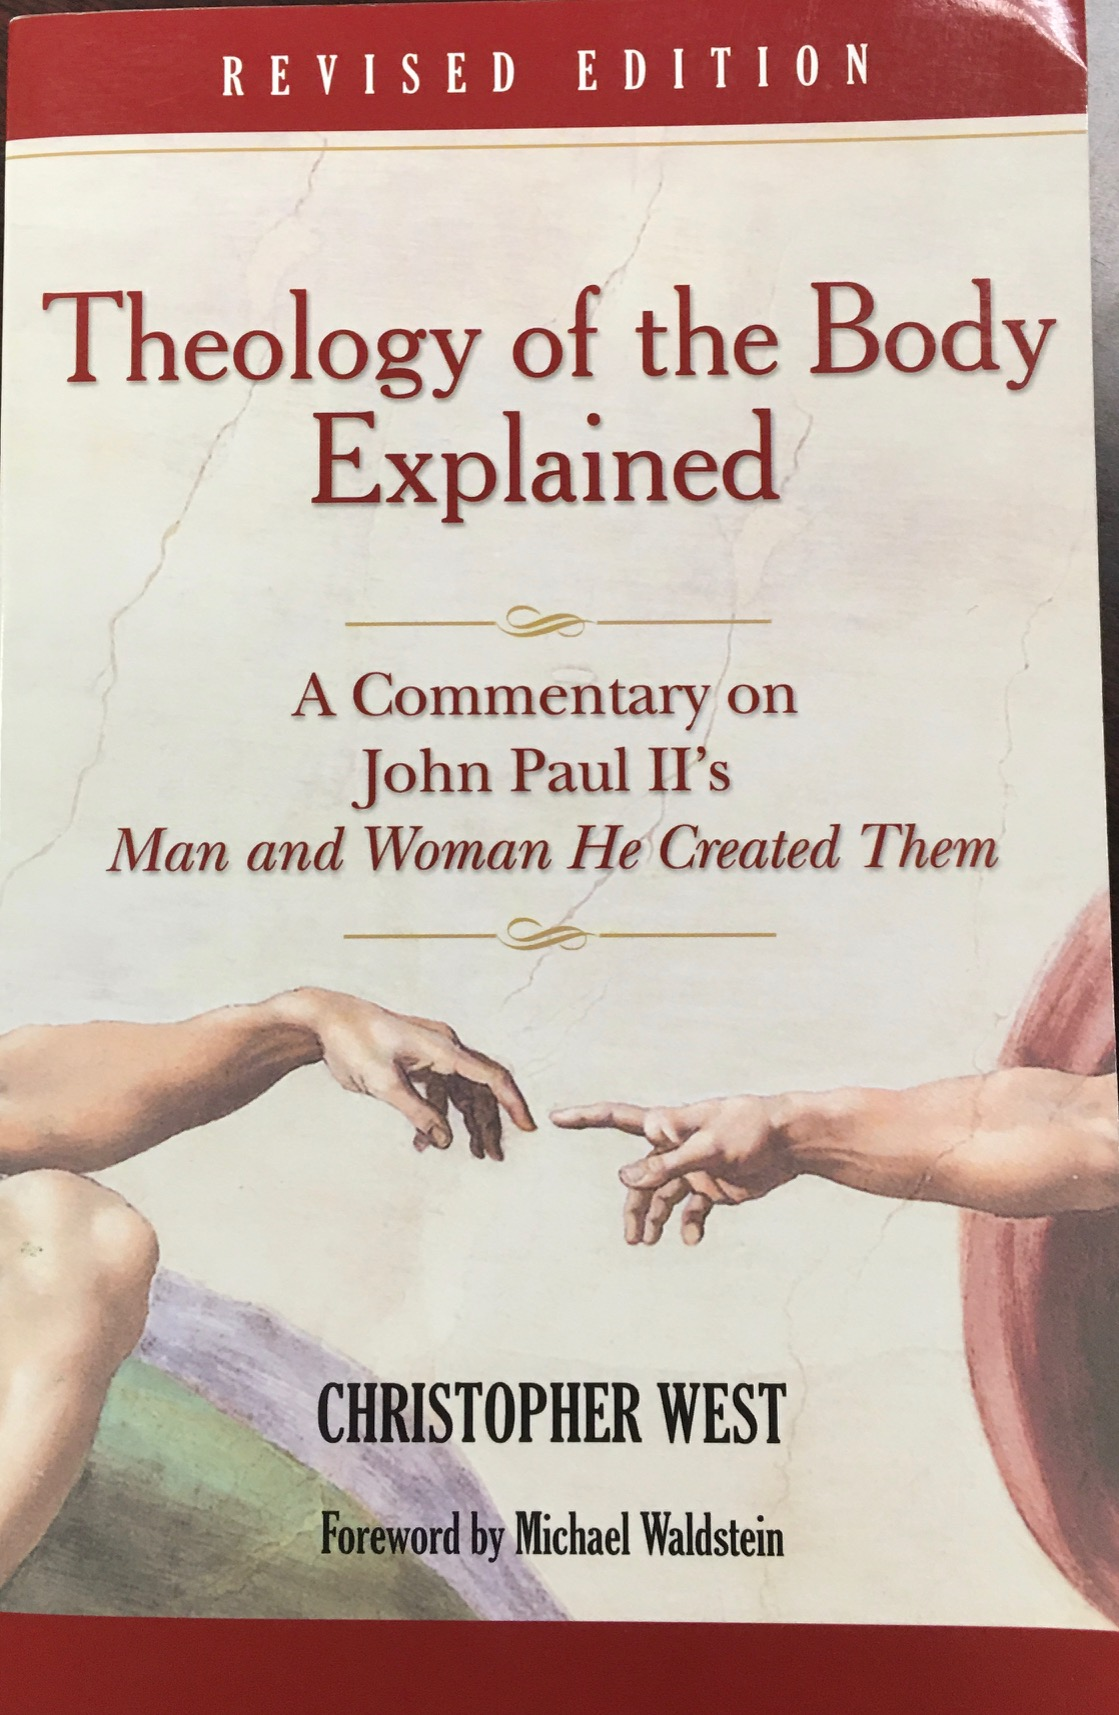 Image for Theology of the Body Explained: A Commentary on John Paul II's Man and Woman He Created Them